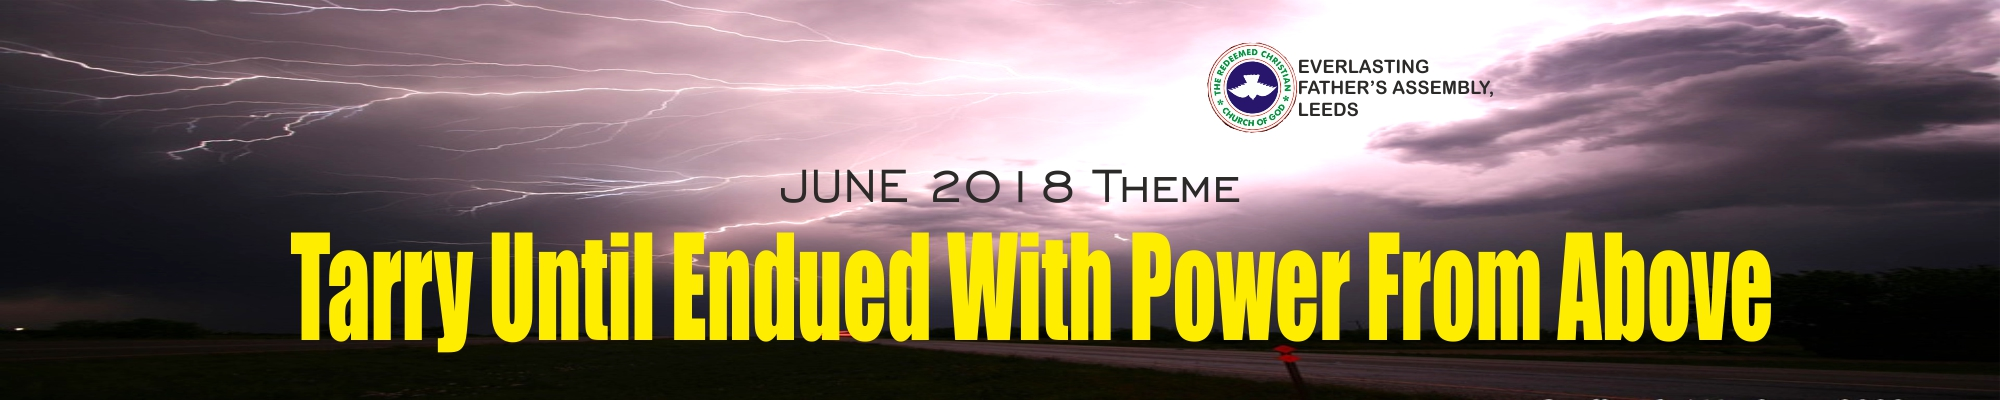 June 2018 Theme – Tarrying Until Endued With Power From Above